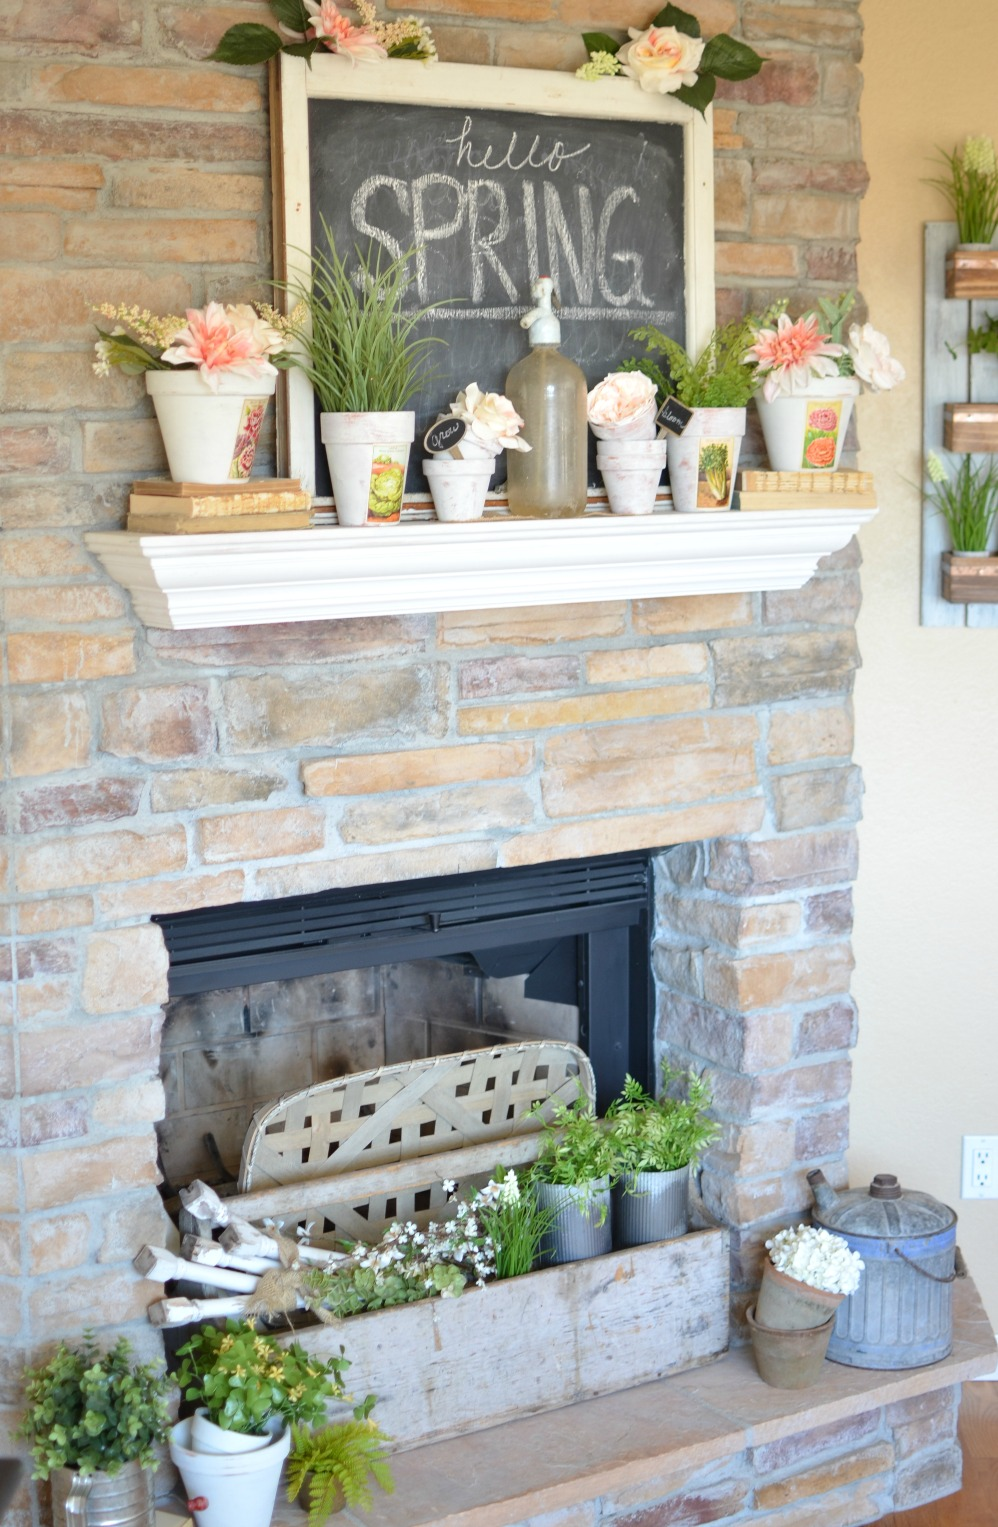 Spring Mantel Inspiration - Vintage Farmhouse Spring Mantel via Sarah Joy Blog | https://www.roseclearfield.com